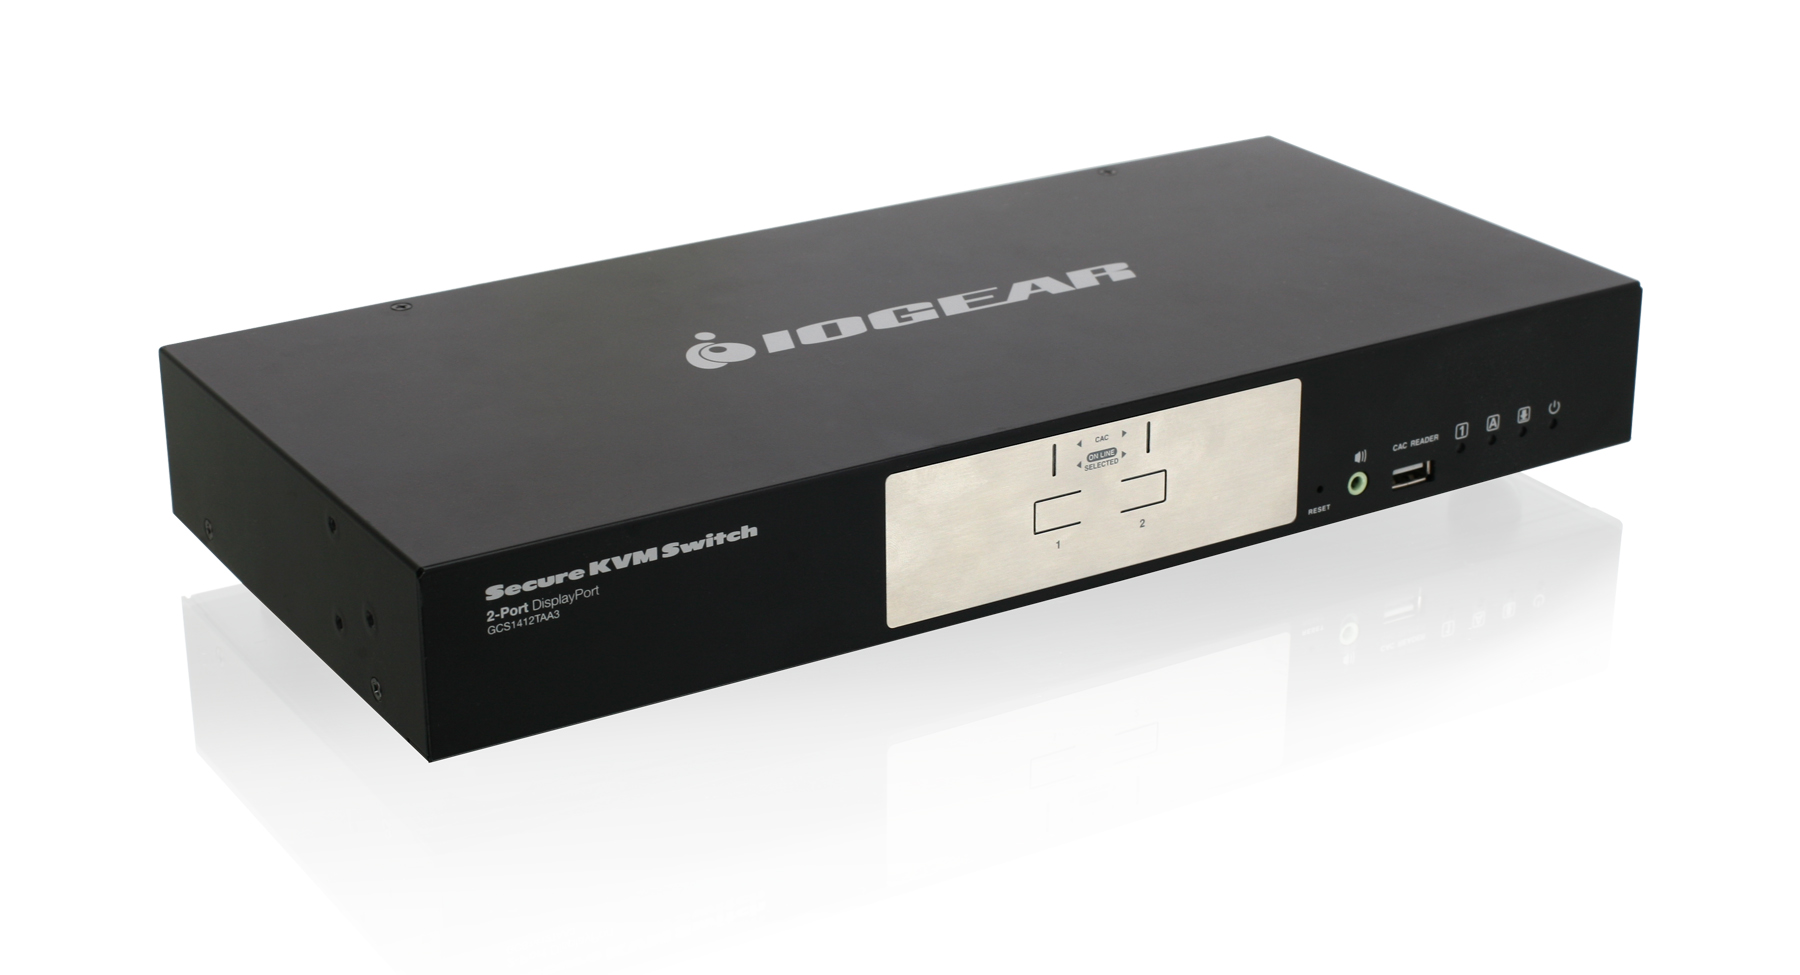 Iogear gsr202 usb smart card access reader drivers download.